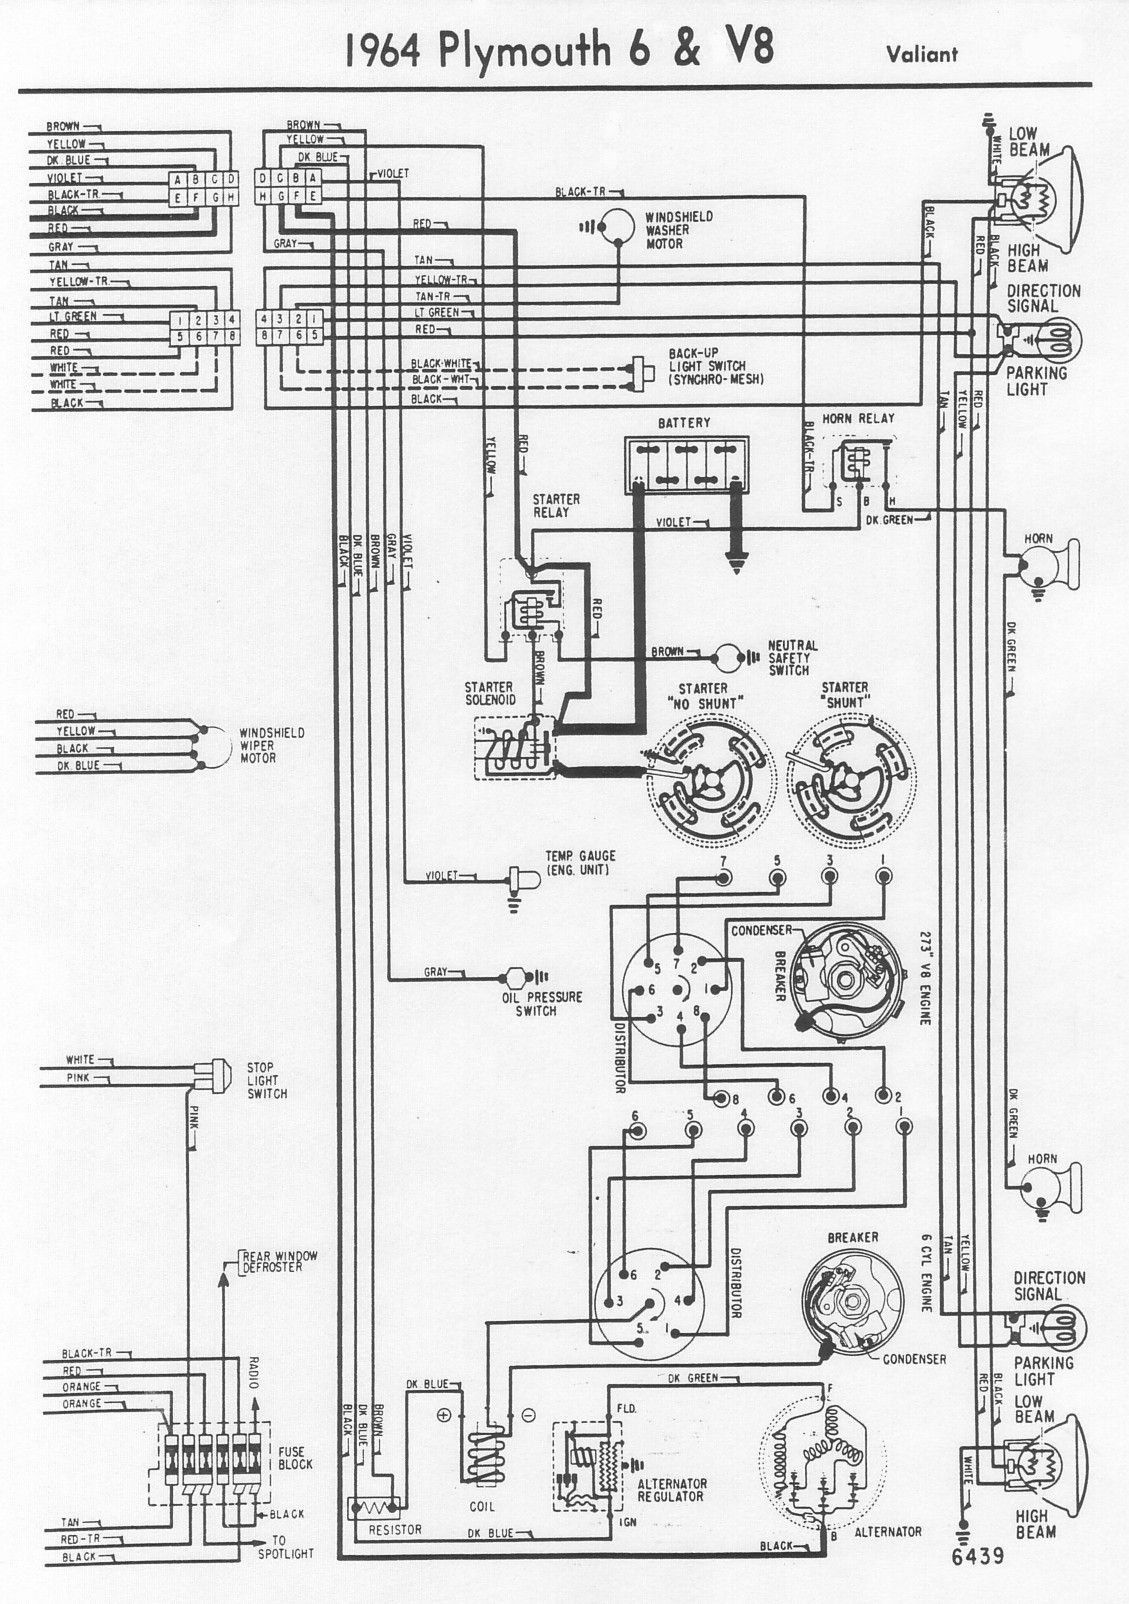 1973 plymouth roadrunner wiring diagram | wiring library 1973 plymouth cuda wiring diagram 70 cuda wiring diagram #10